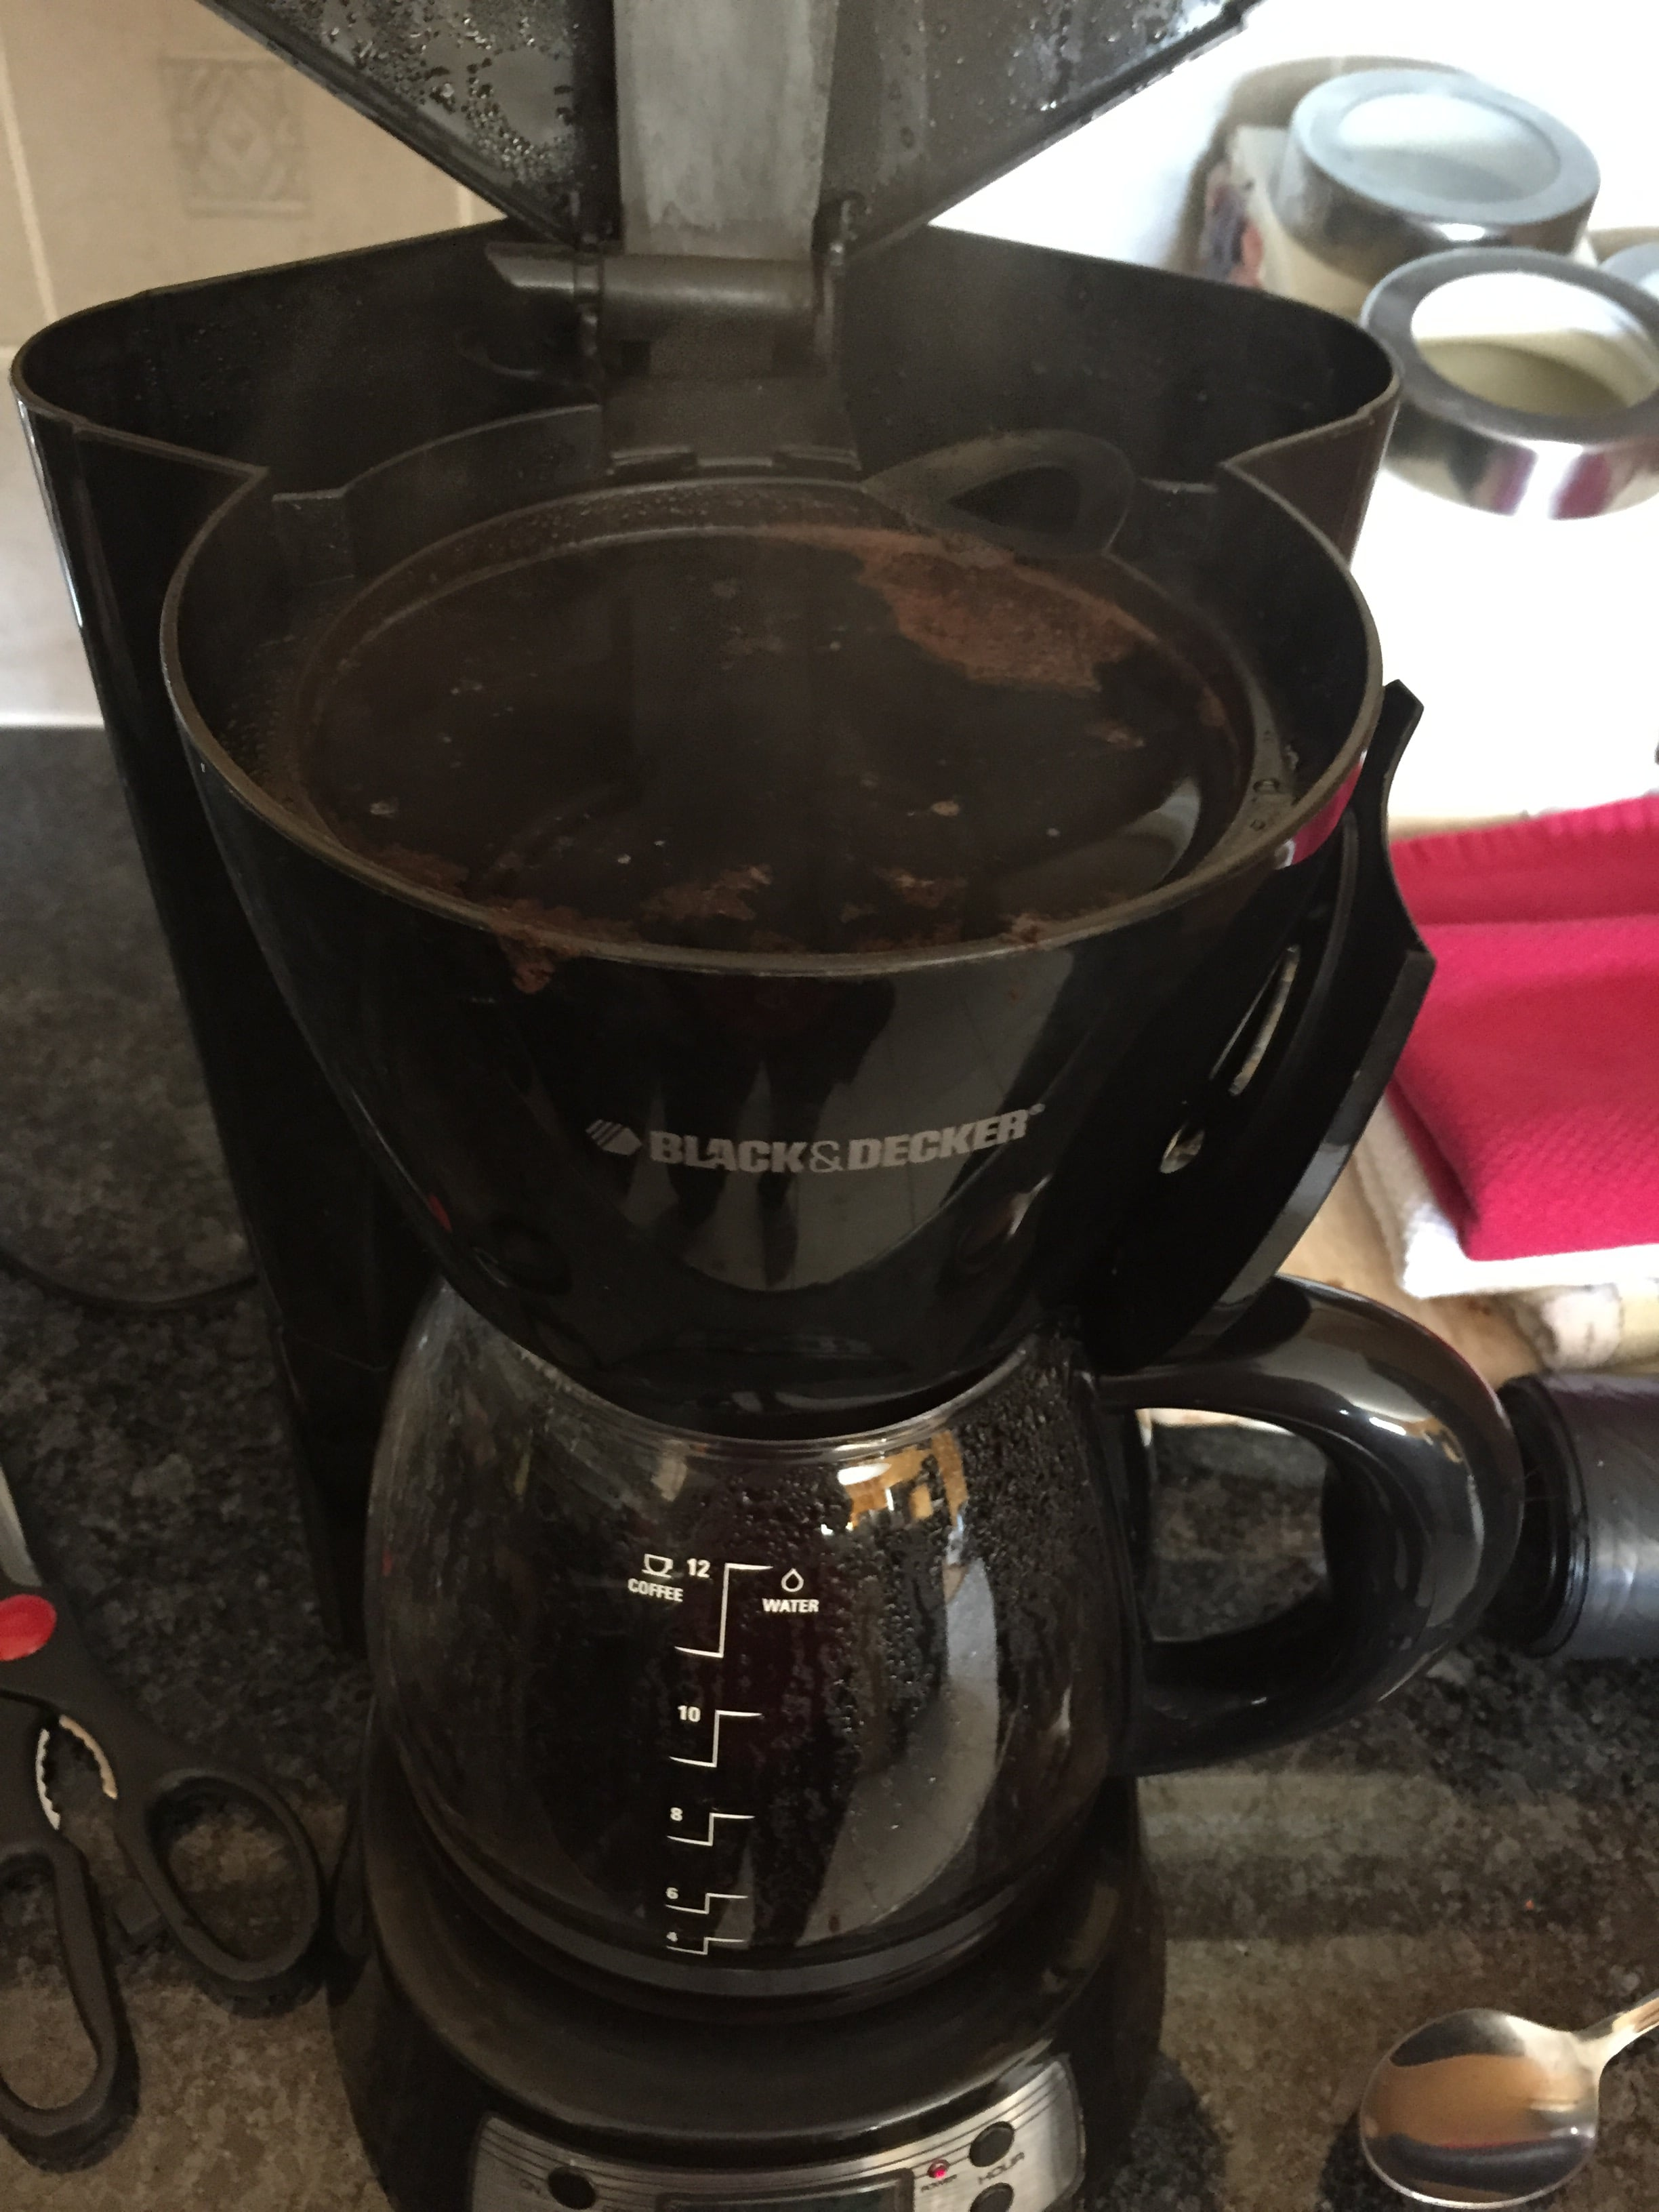 HOW DO COFFEE MAKERS WORK?!?